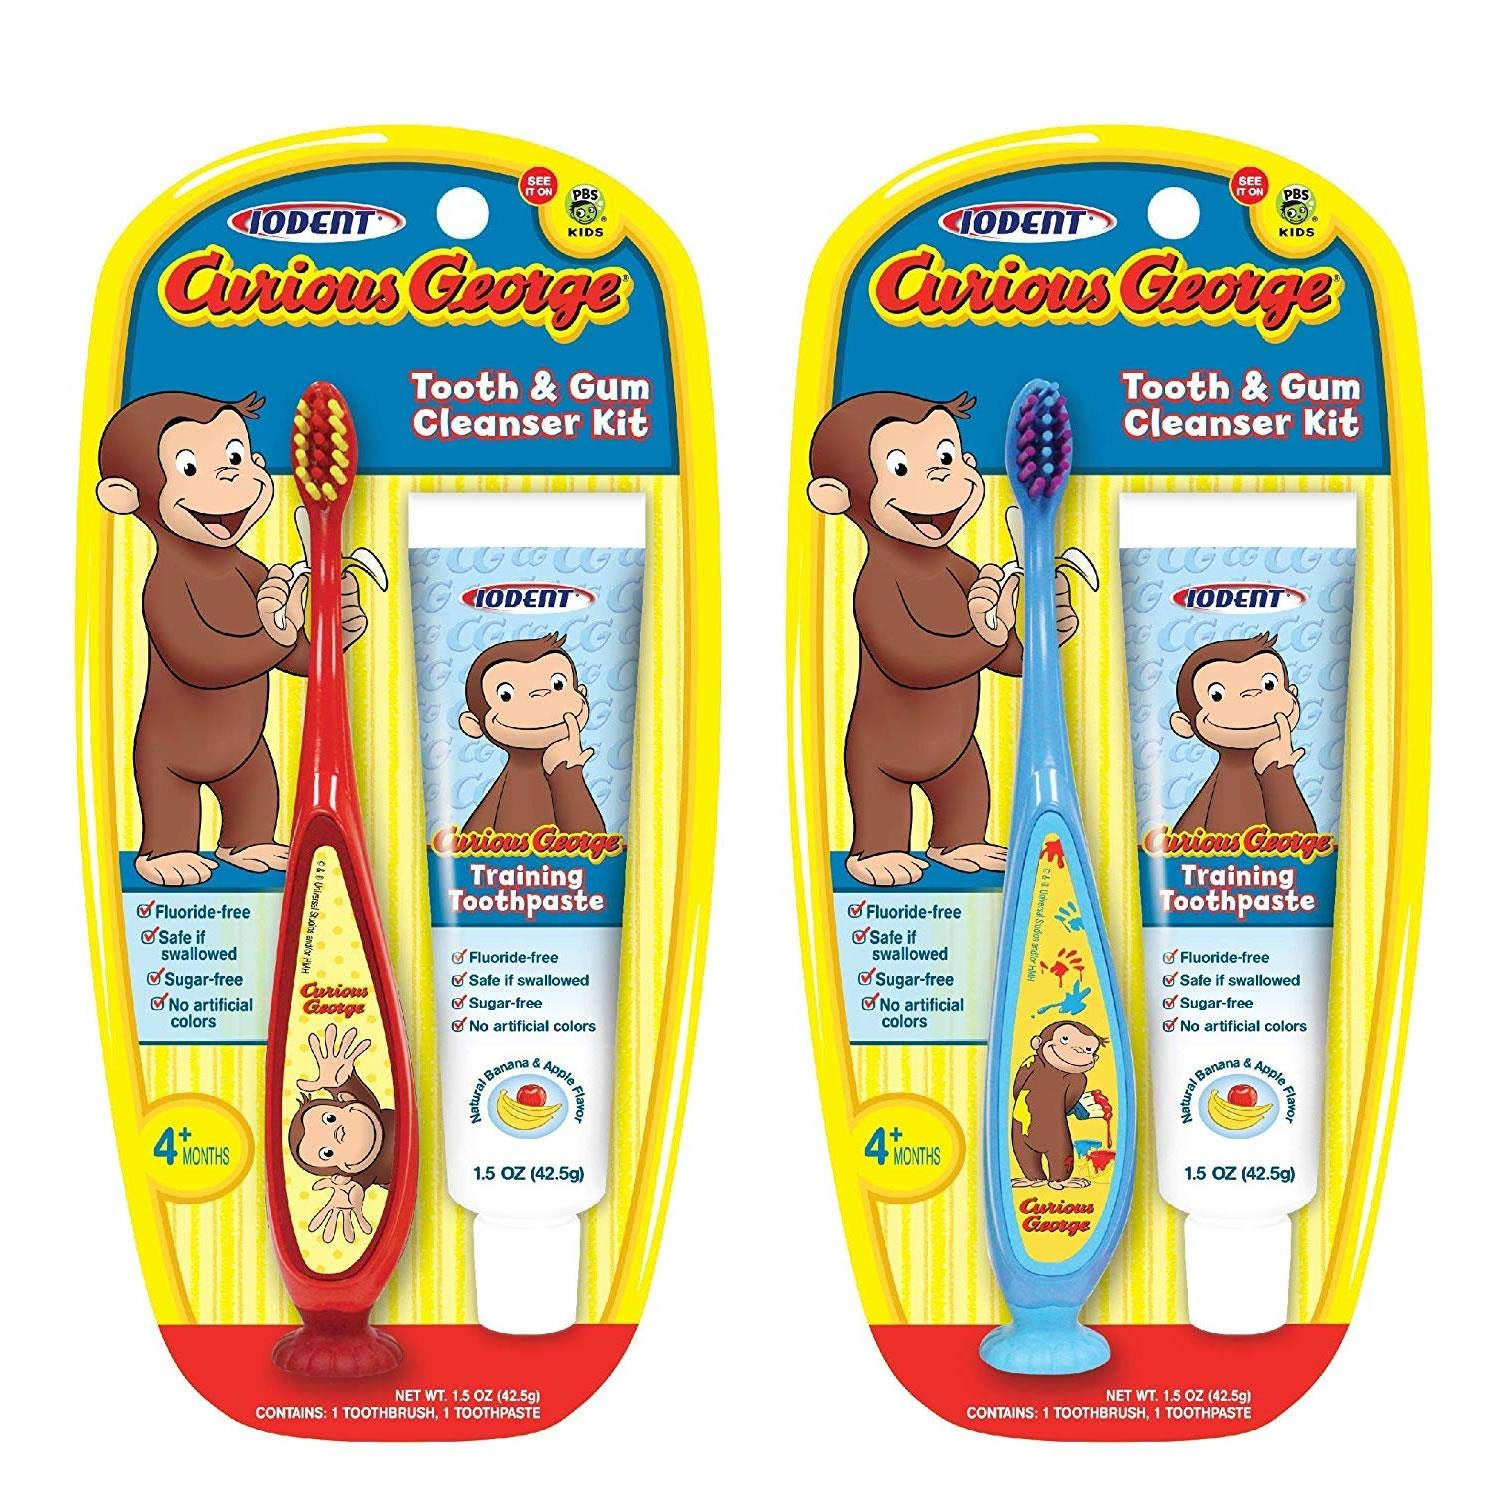 Curious George Cleanser Set Toothbrush & Toothpaste for Baby, Kids, Children, Girls, and Boys. Starter and Training kit…